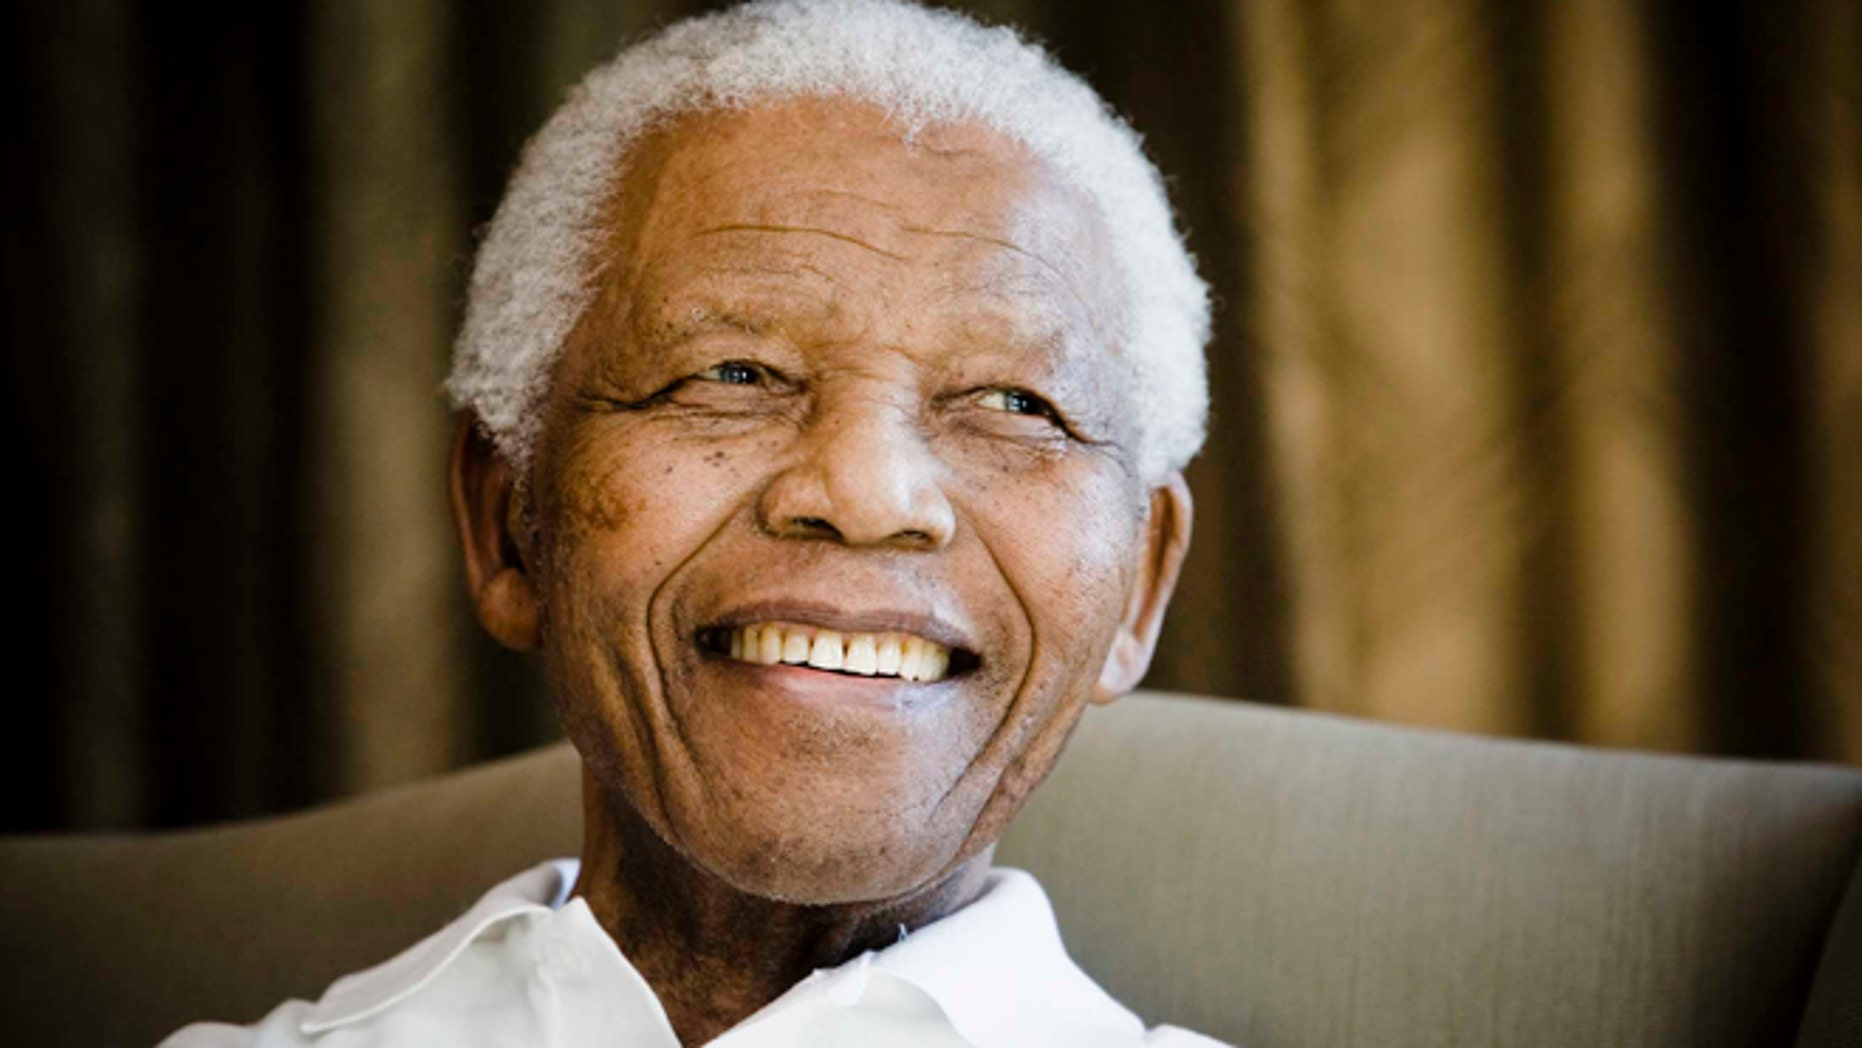 June 2, 2009: Former South African President Nelson Mandela reacts at the Mandela foundation, in Johannesburg, South Africa, during a meeting with a group of American and South African students as part of a series of activities leading to Mandela Day on July 18th.